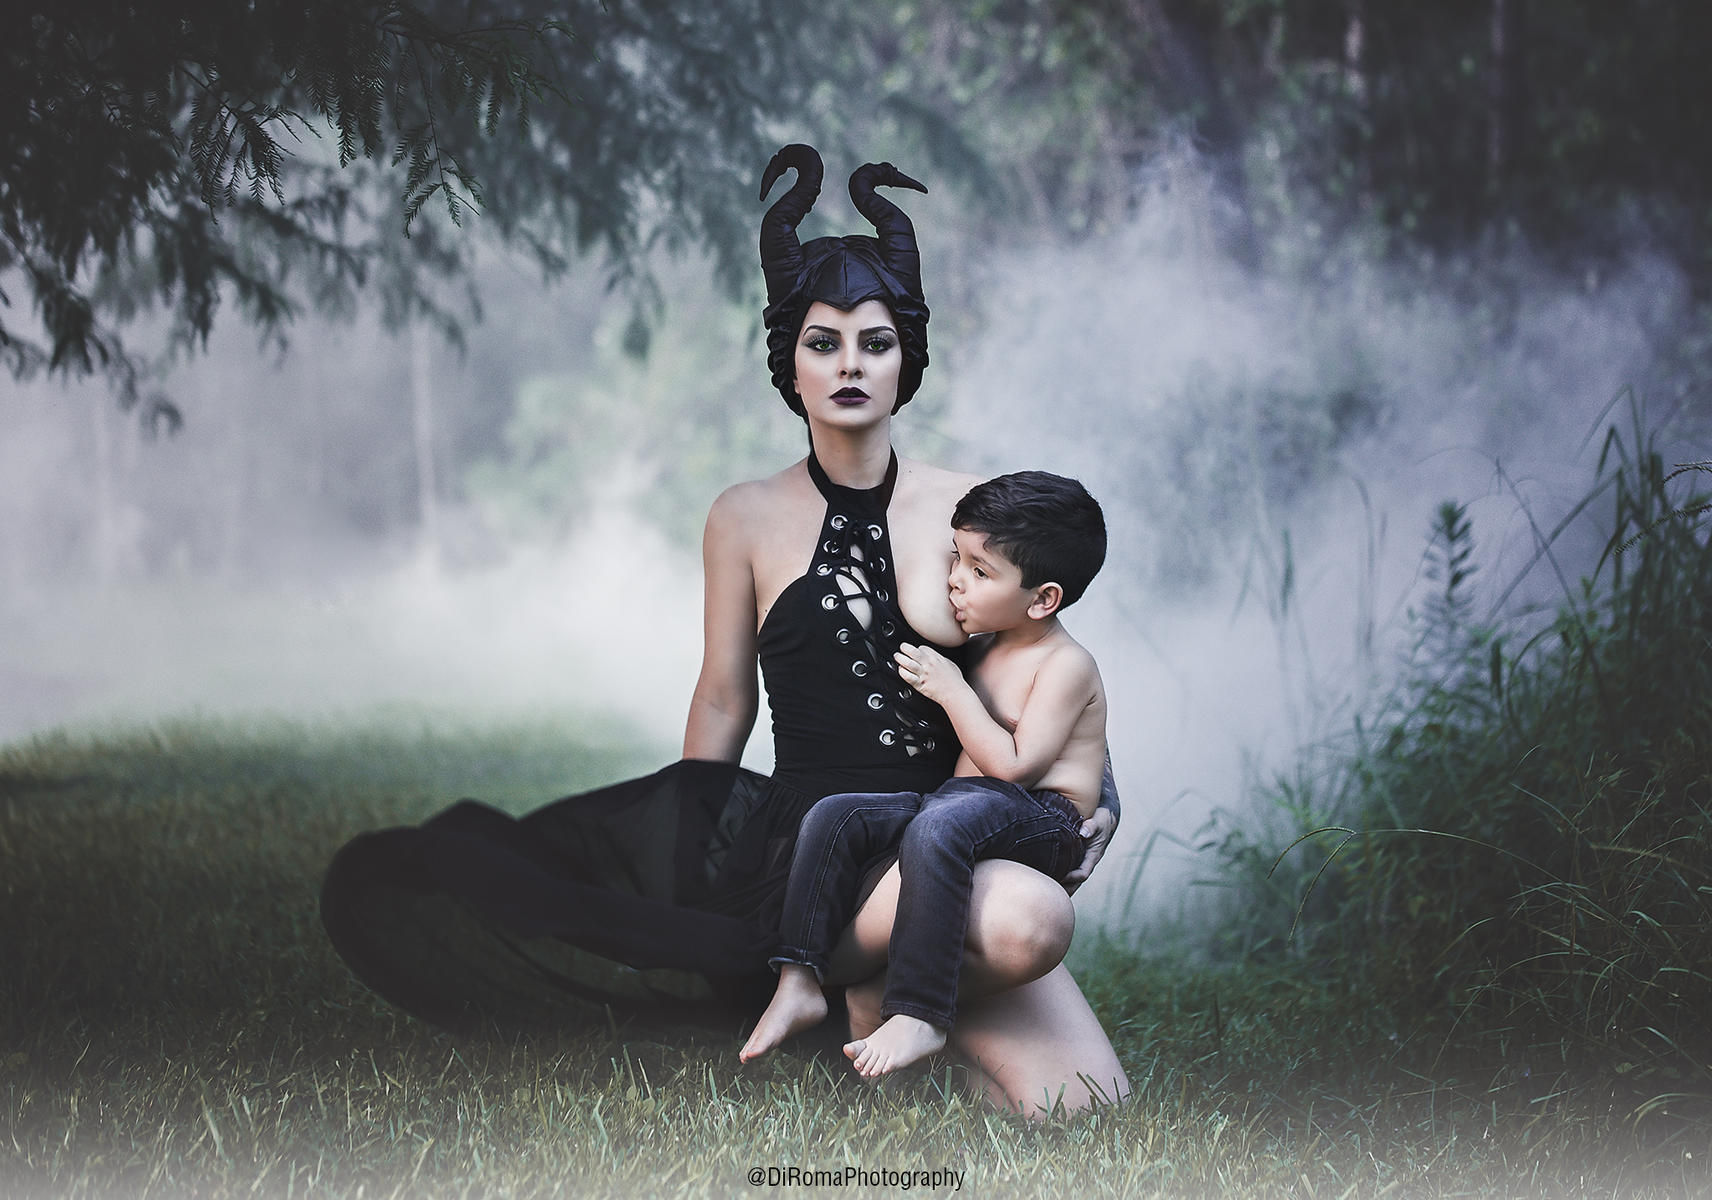 di roma photography - maleficent breastfeeding shoot